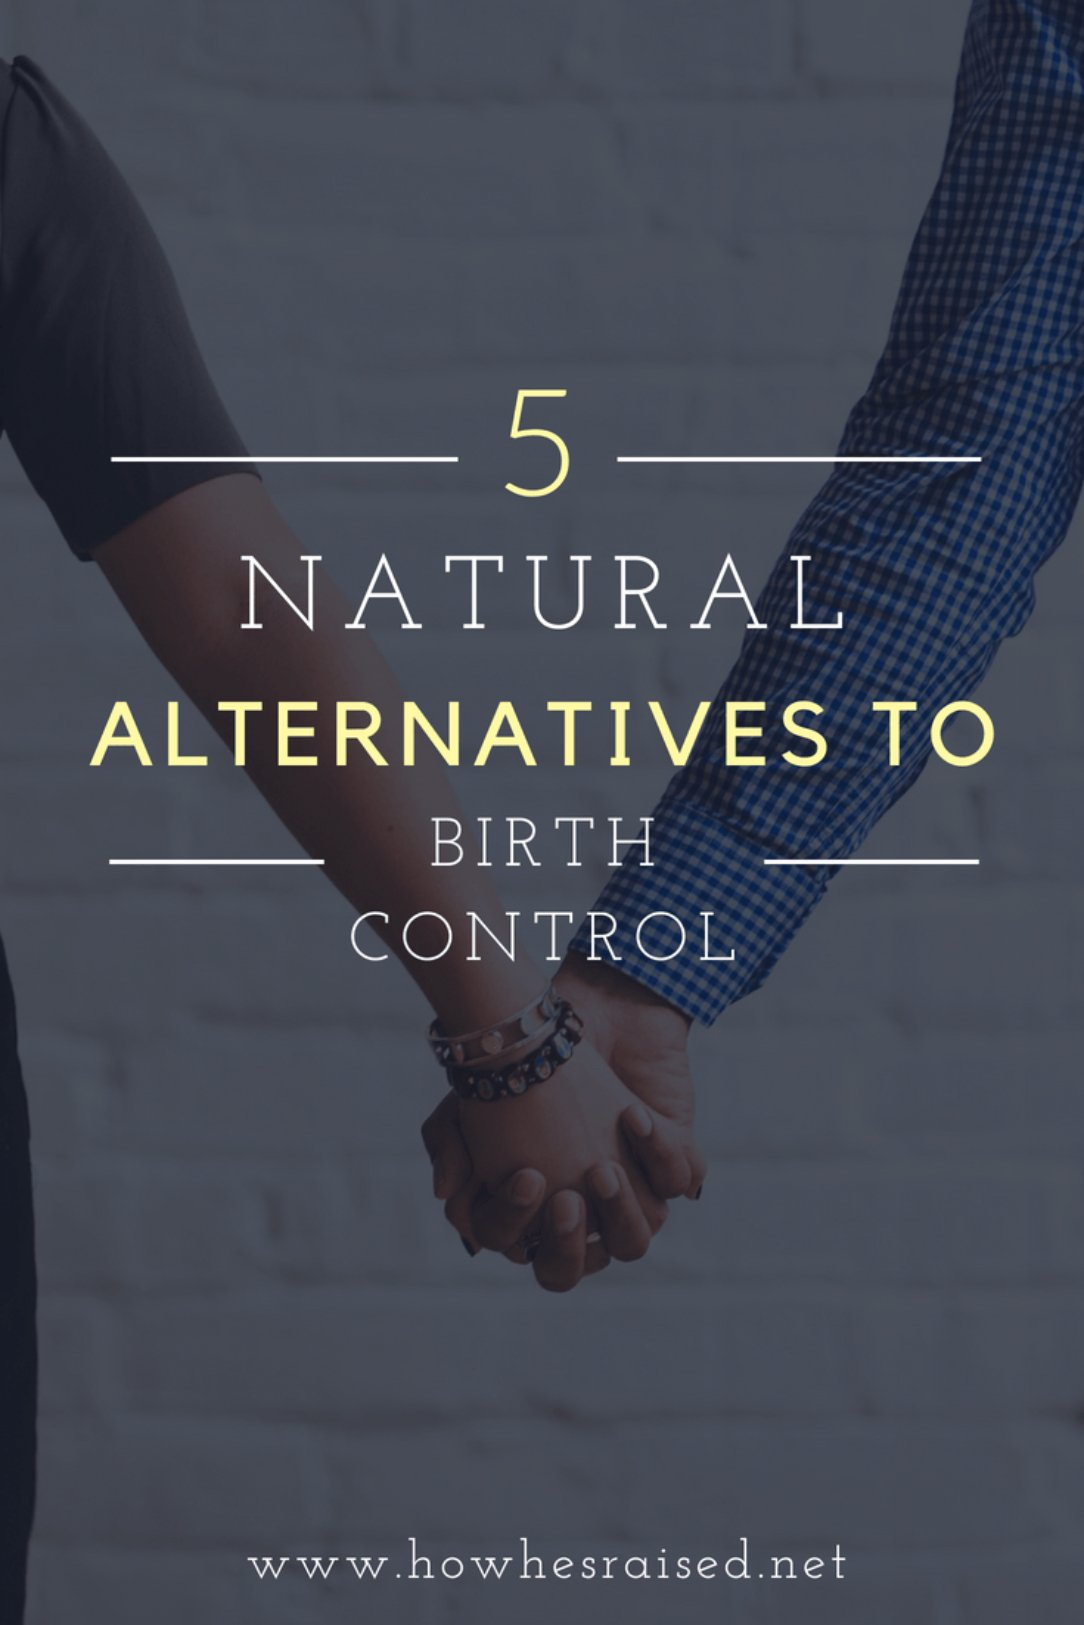 5 Natural Alternatives to Birth Control